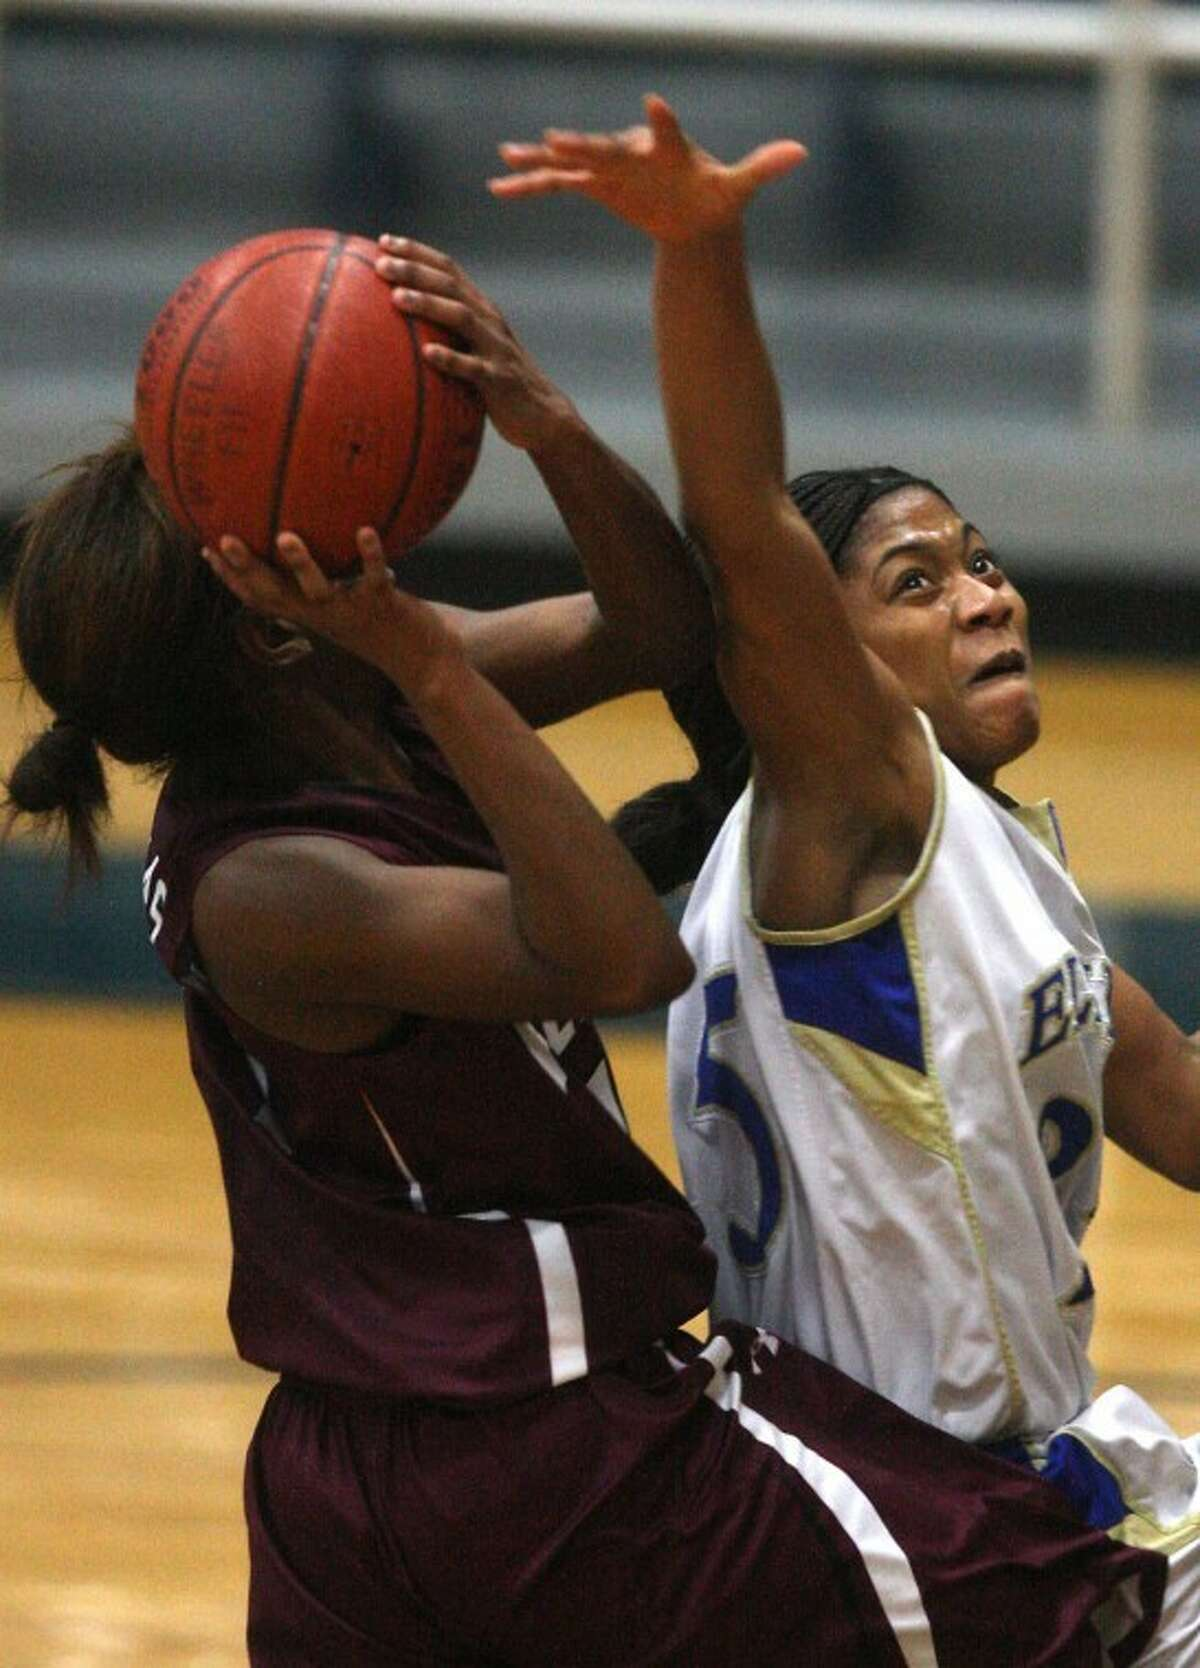 Elkins' Taylor Williams defendes a shot from Kempner's Crystal Okenkpu in Thursday's game at Wheeler Field House. Williams had nine rebounds. Okenkpu scored nine points. (Photo by Patric Schneider)